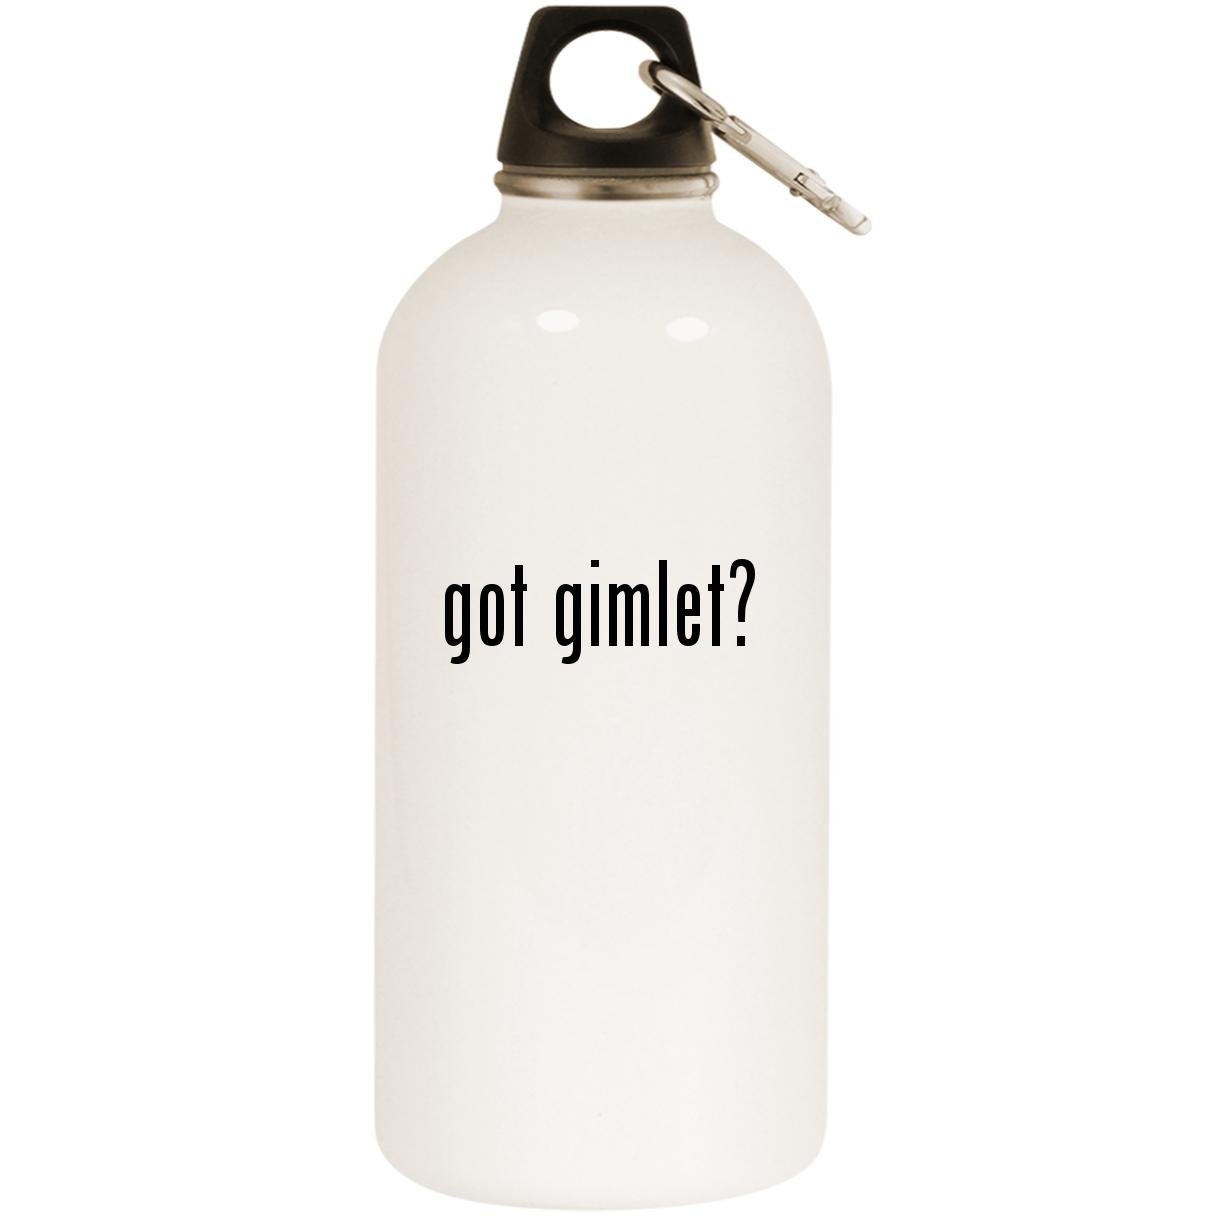 got gimlet? - White 20oz Stainless Steel Water Bottle with Carabiner